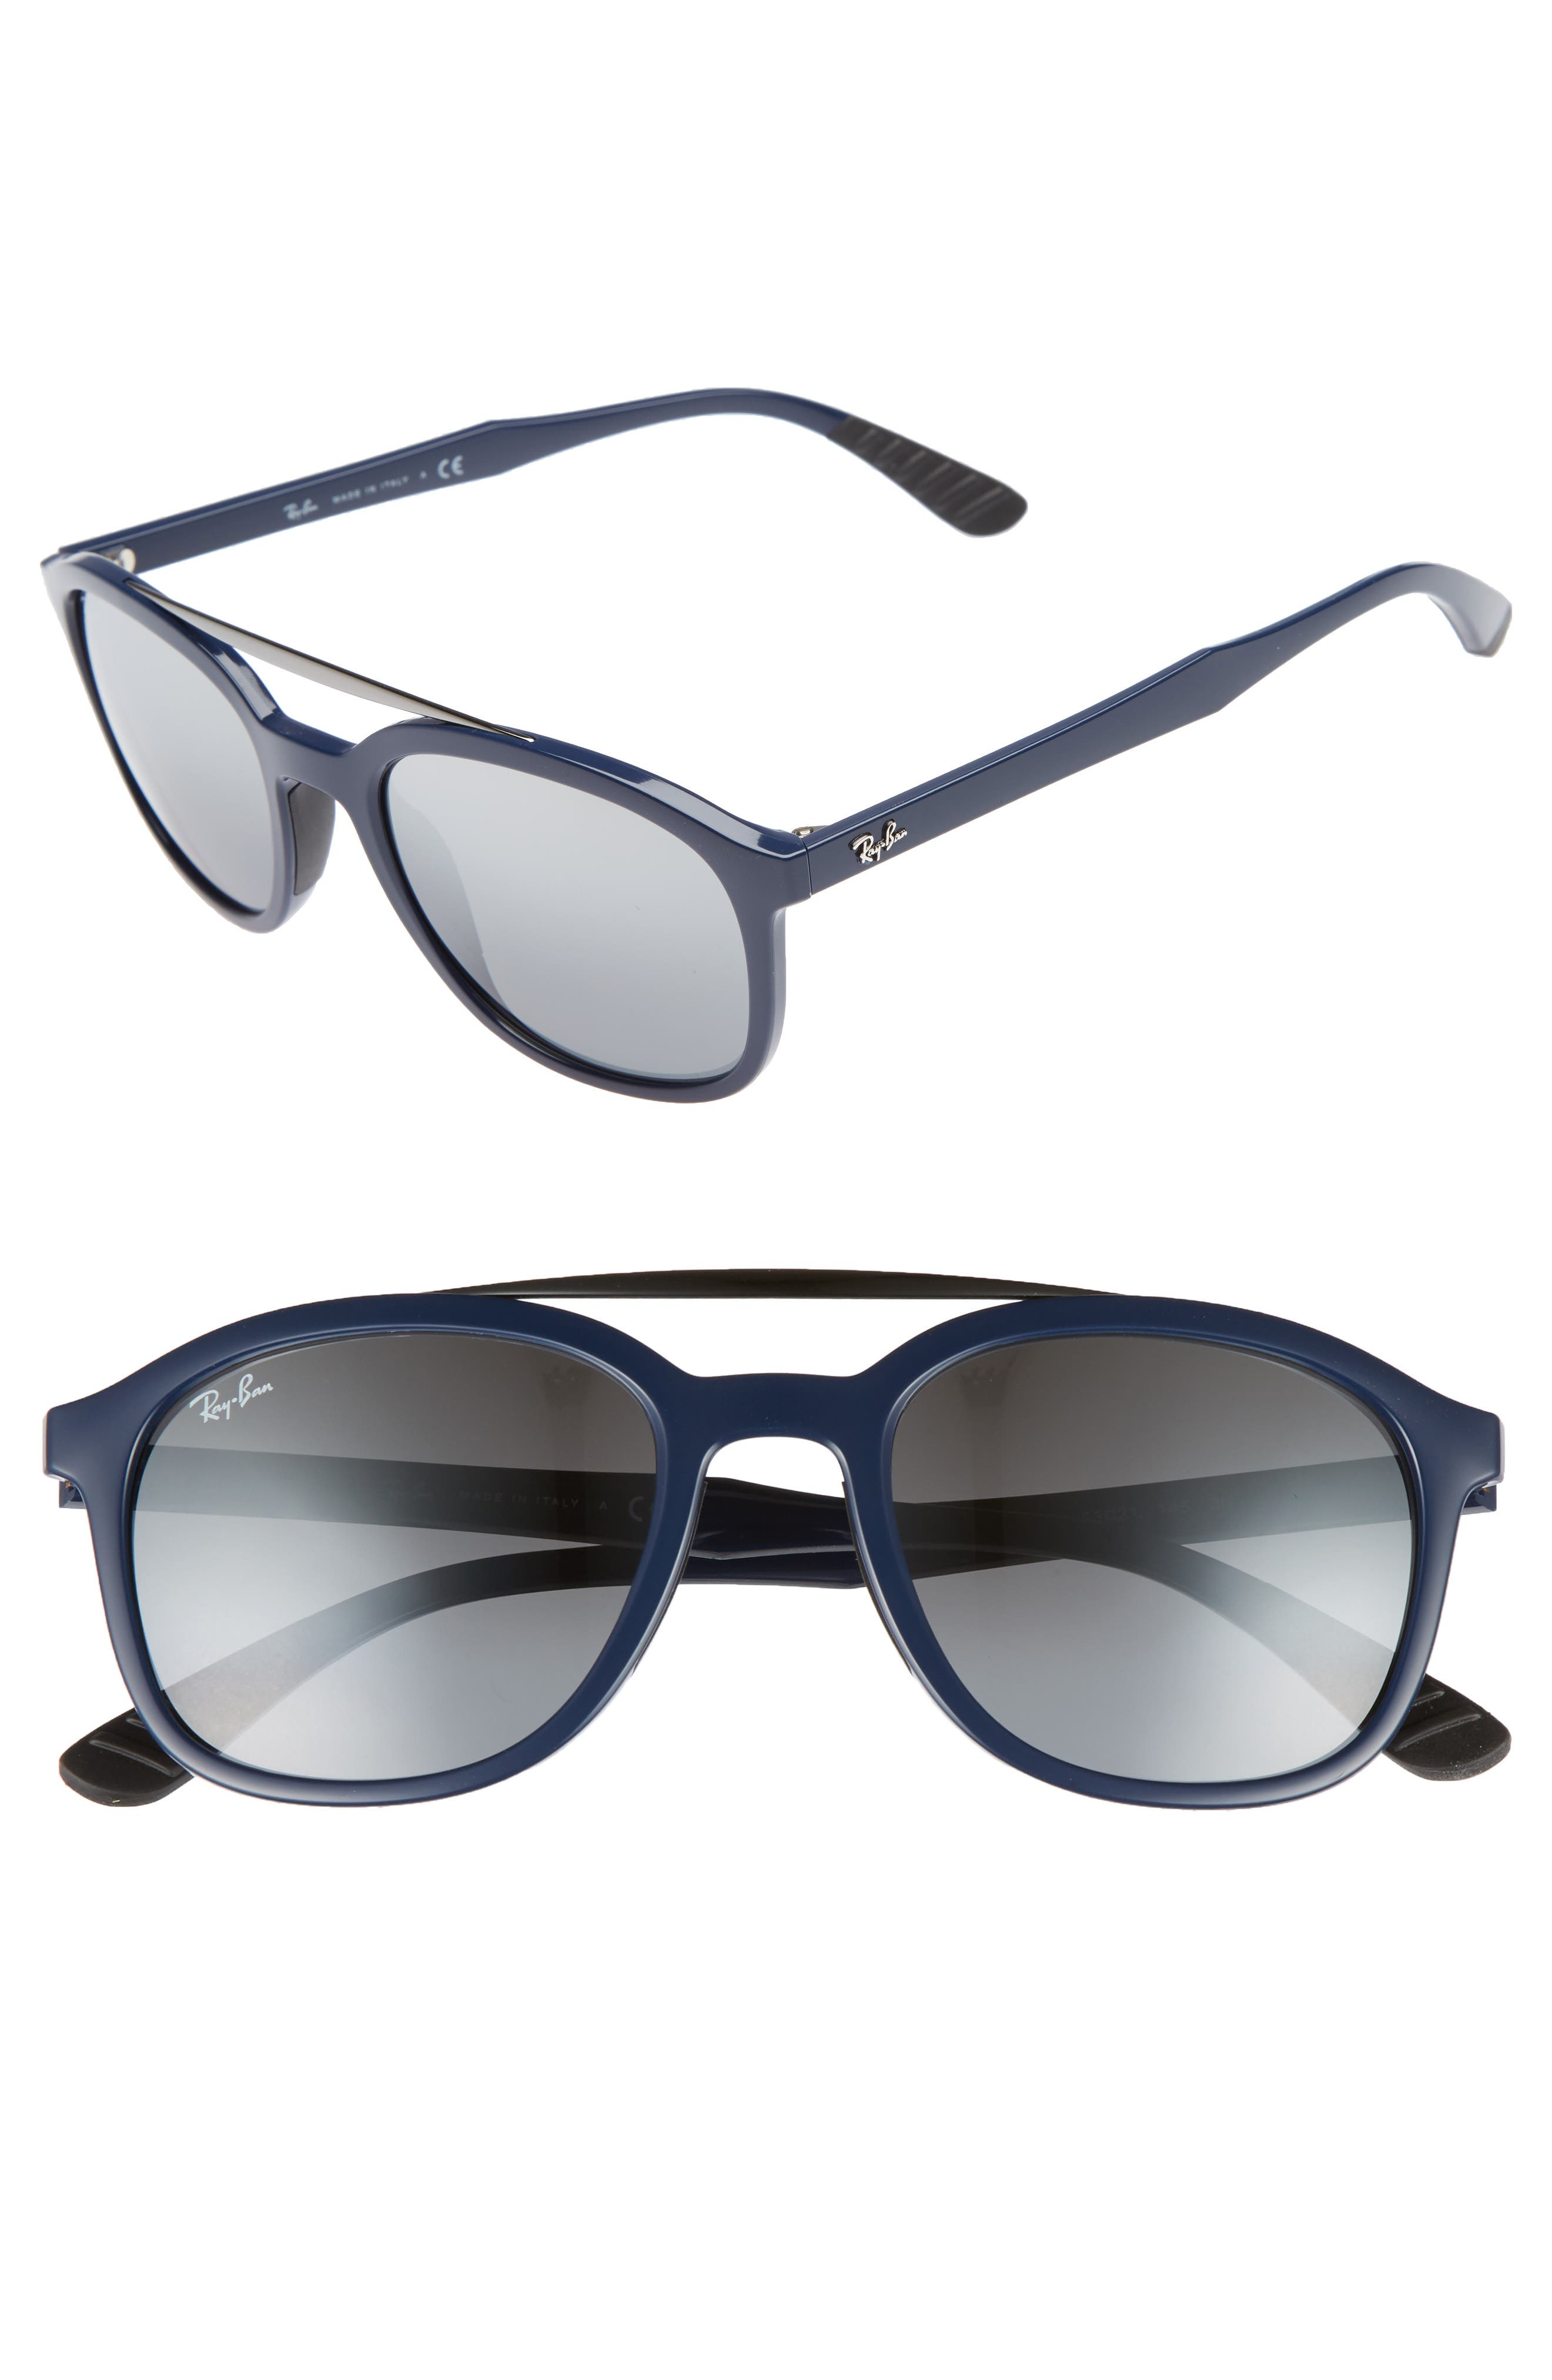 2525dfbe522 ... new zealand ray ban active lifestyle 53mm sunglasses 62a52 62b0e